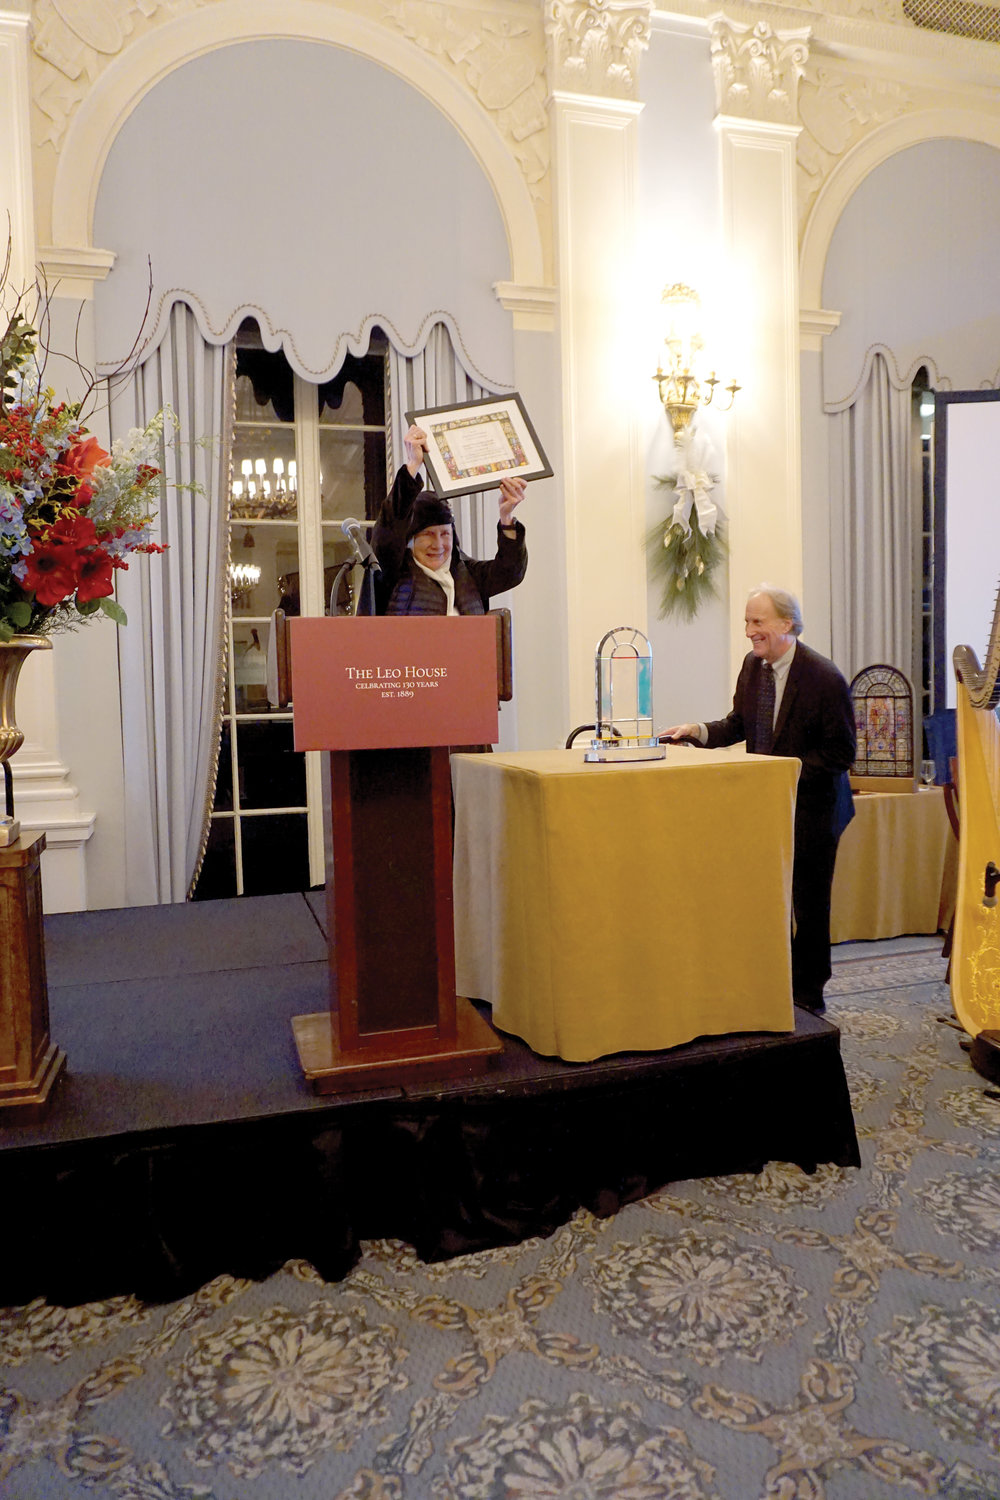 Mother Dolores Hart, O.S.B., raises the certificate for the Pope Leo XIII Award she received from the Leo House, a Catholic guesthouse in Manhattan, at its third annual fund-raising gala named for the pontiff.